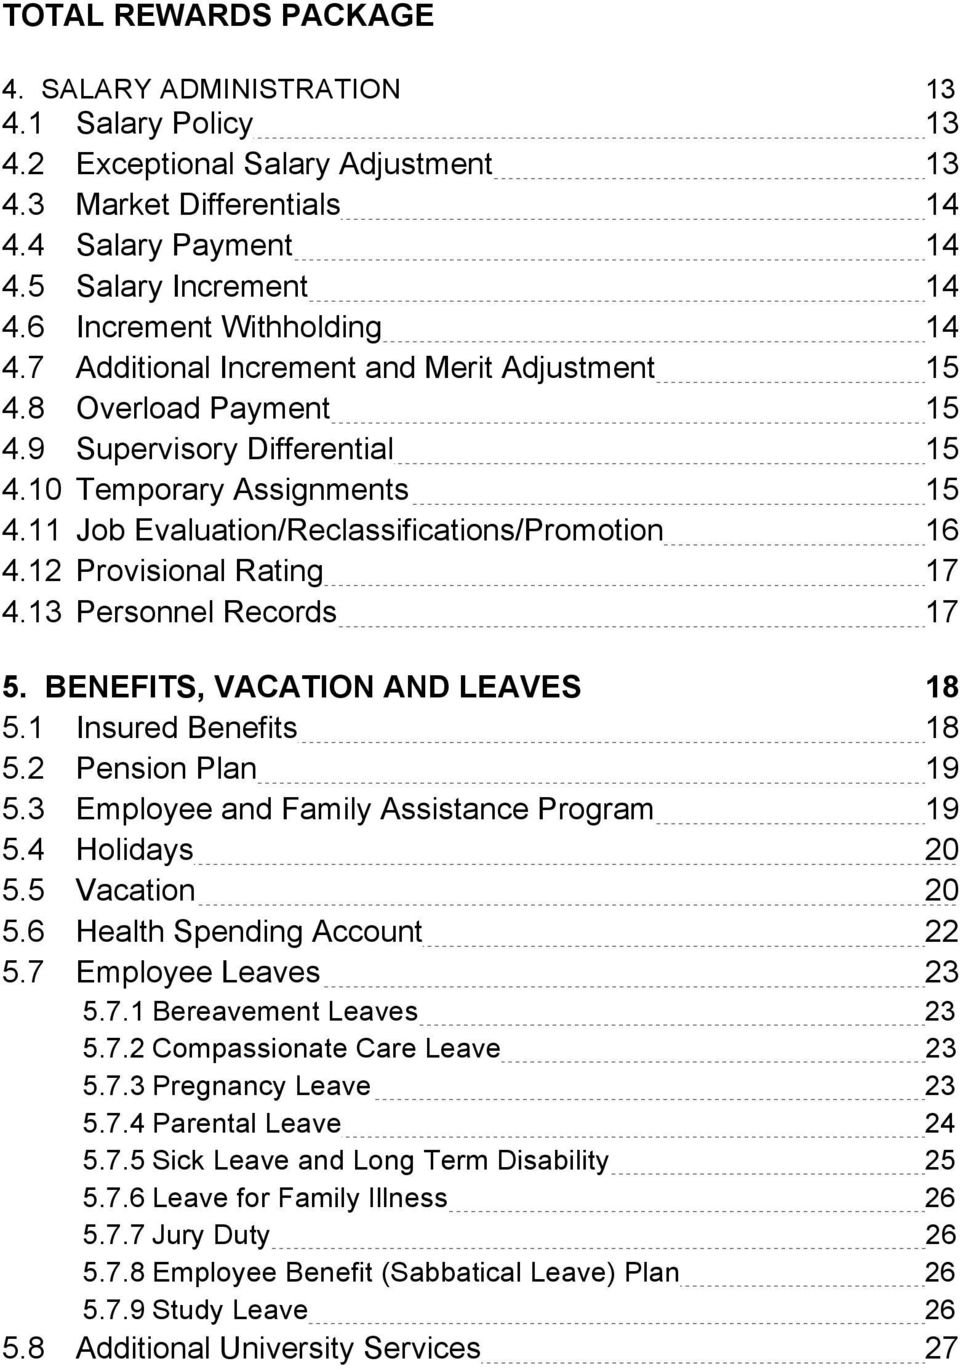 11 Job Evaluation/Reclassifications/Promotion 16 4.12 Provisional Rating 17 4.13 Personnel Records 17 5. BENEFITS, VACATION AND LEAVES 18 5.1 Insured Benefits 18 5.2 Pension Plan 19 5.